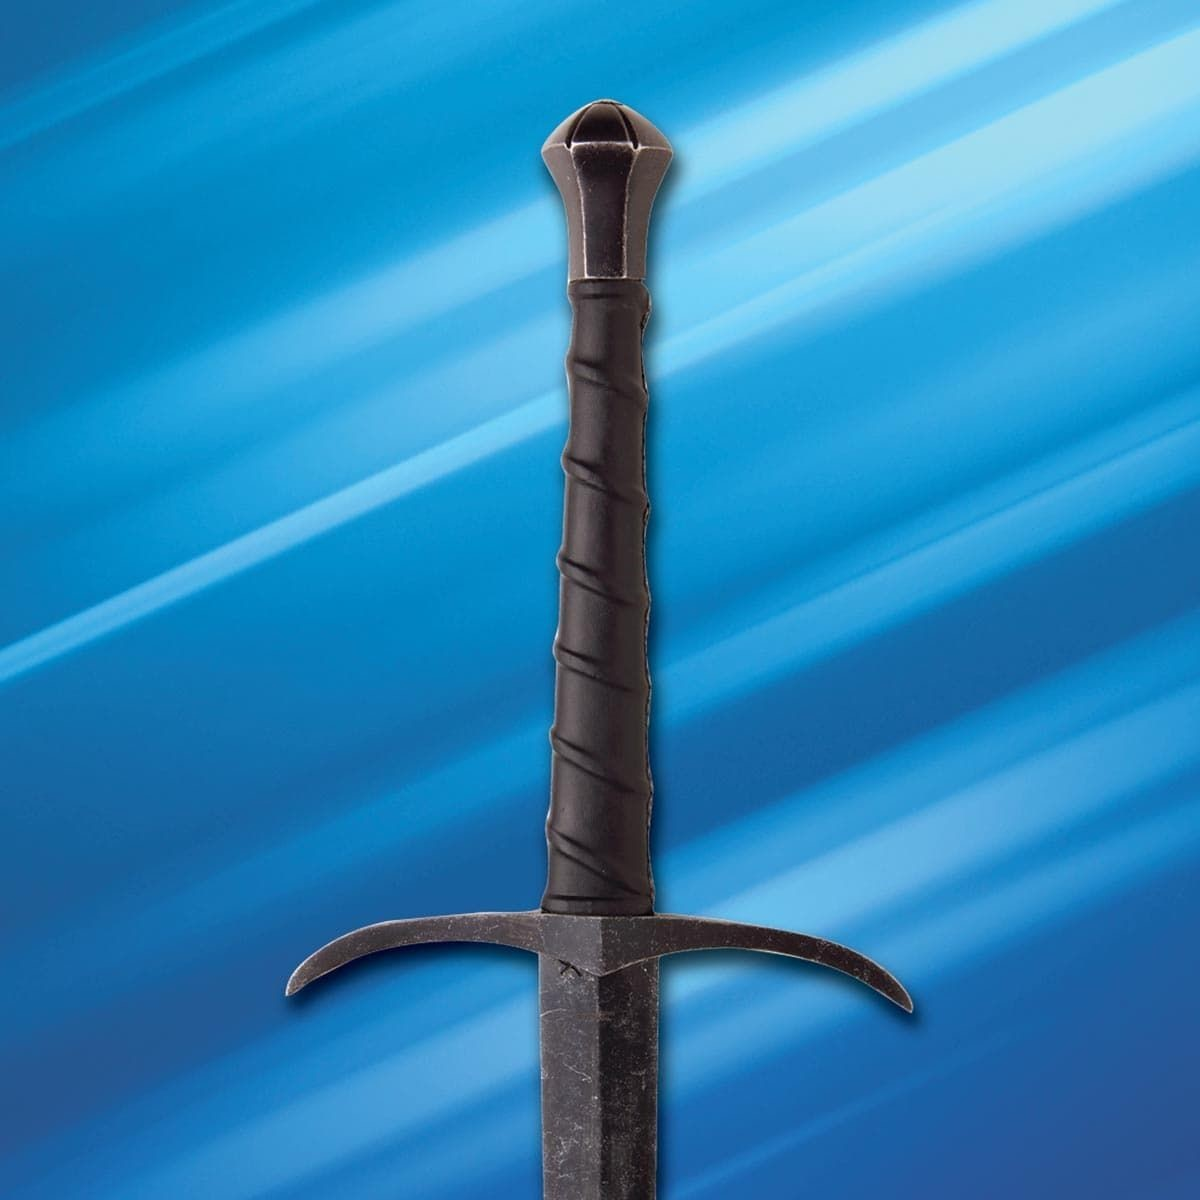 Hilt of Battlecry Bosworth Longsword